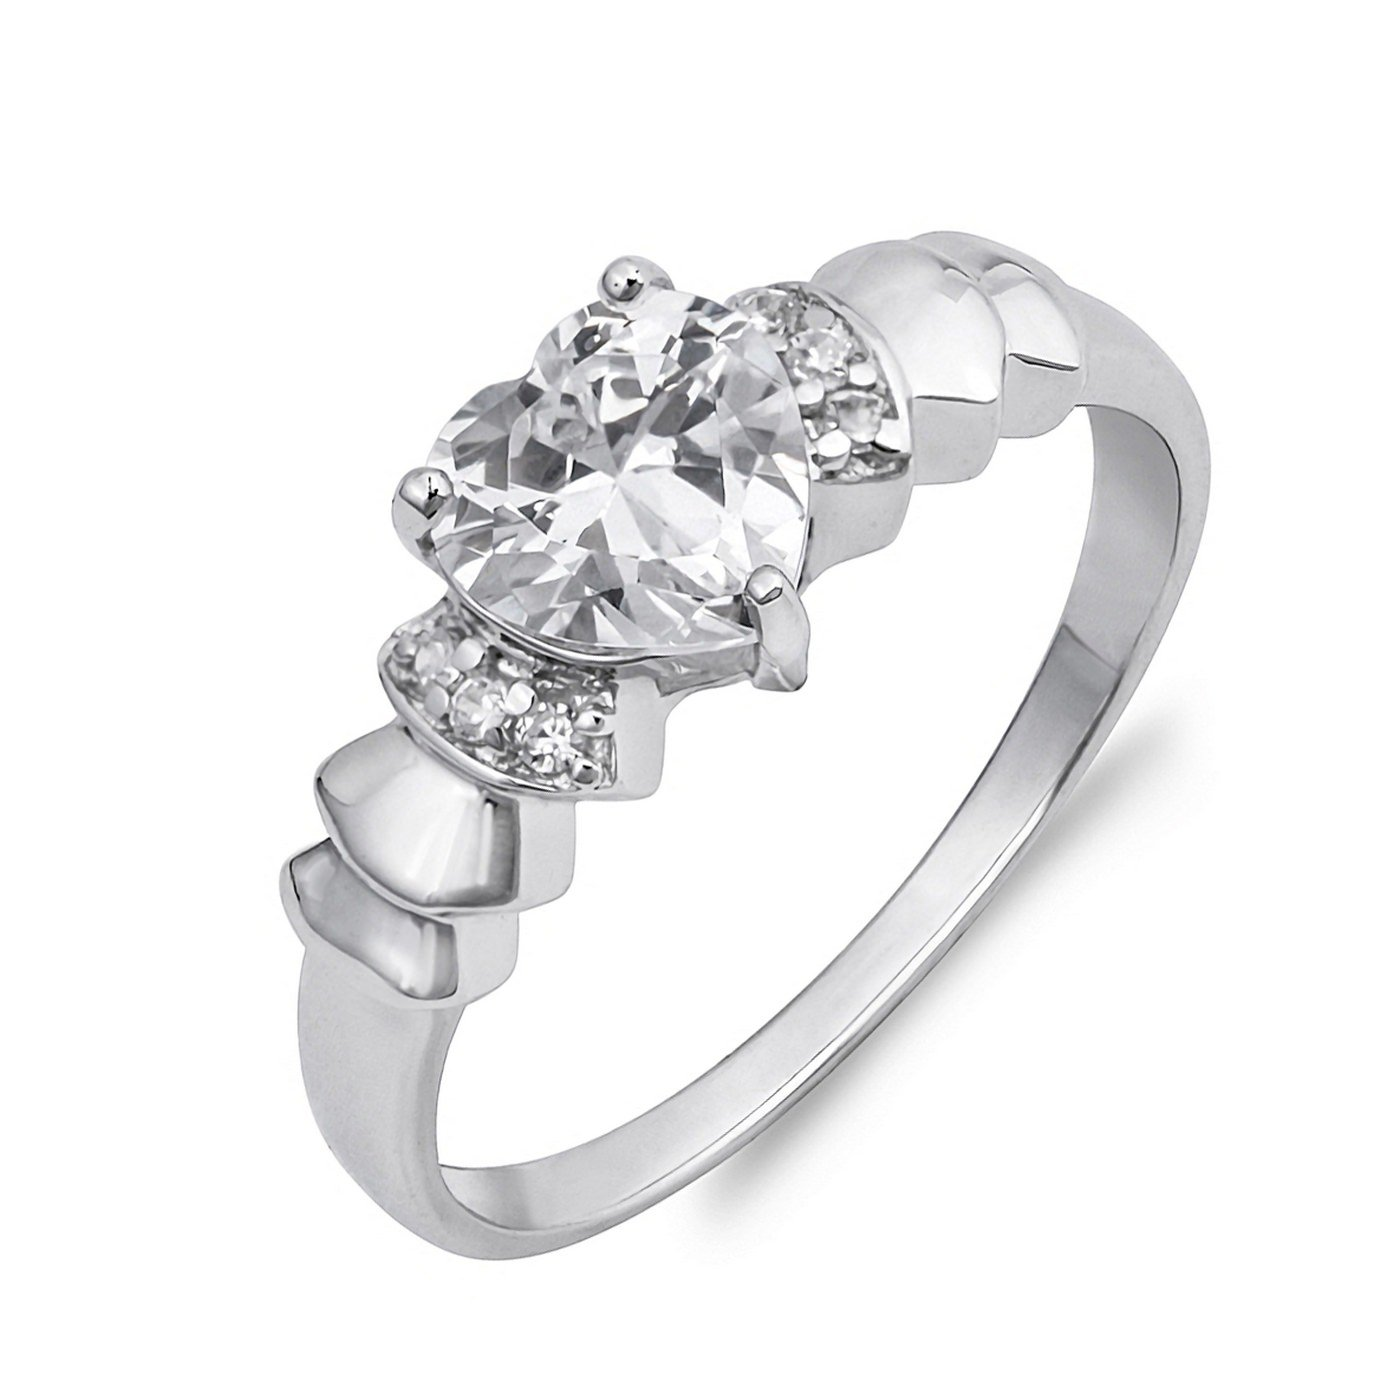 6mm Heart Cut Cubic Zirconia With Side CZ Womens Solid Sterling Silver Ring Sizes 4-10